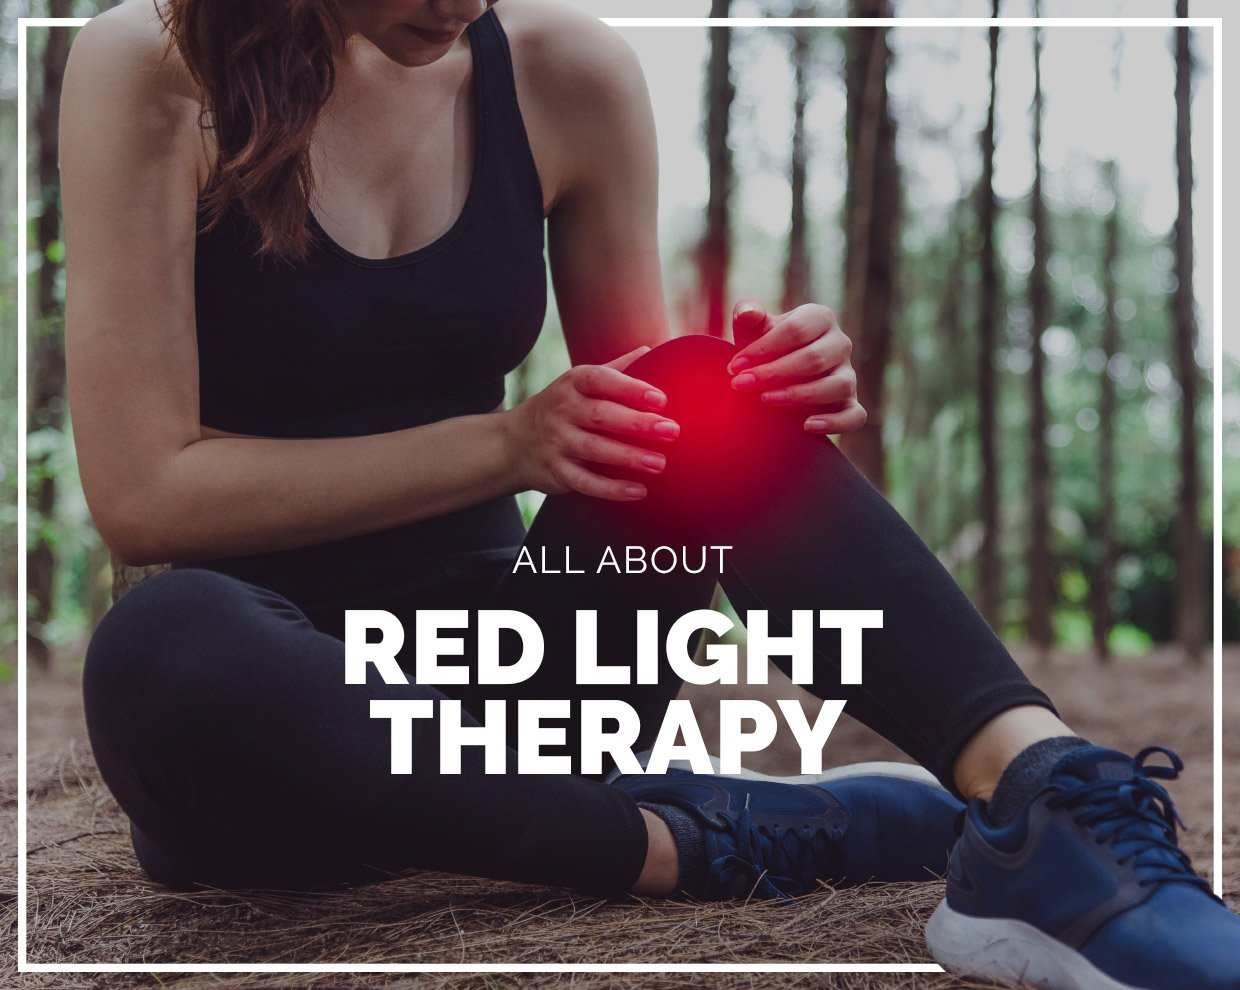 The health benefits of red light therapy